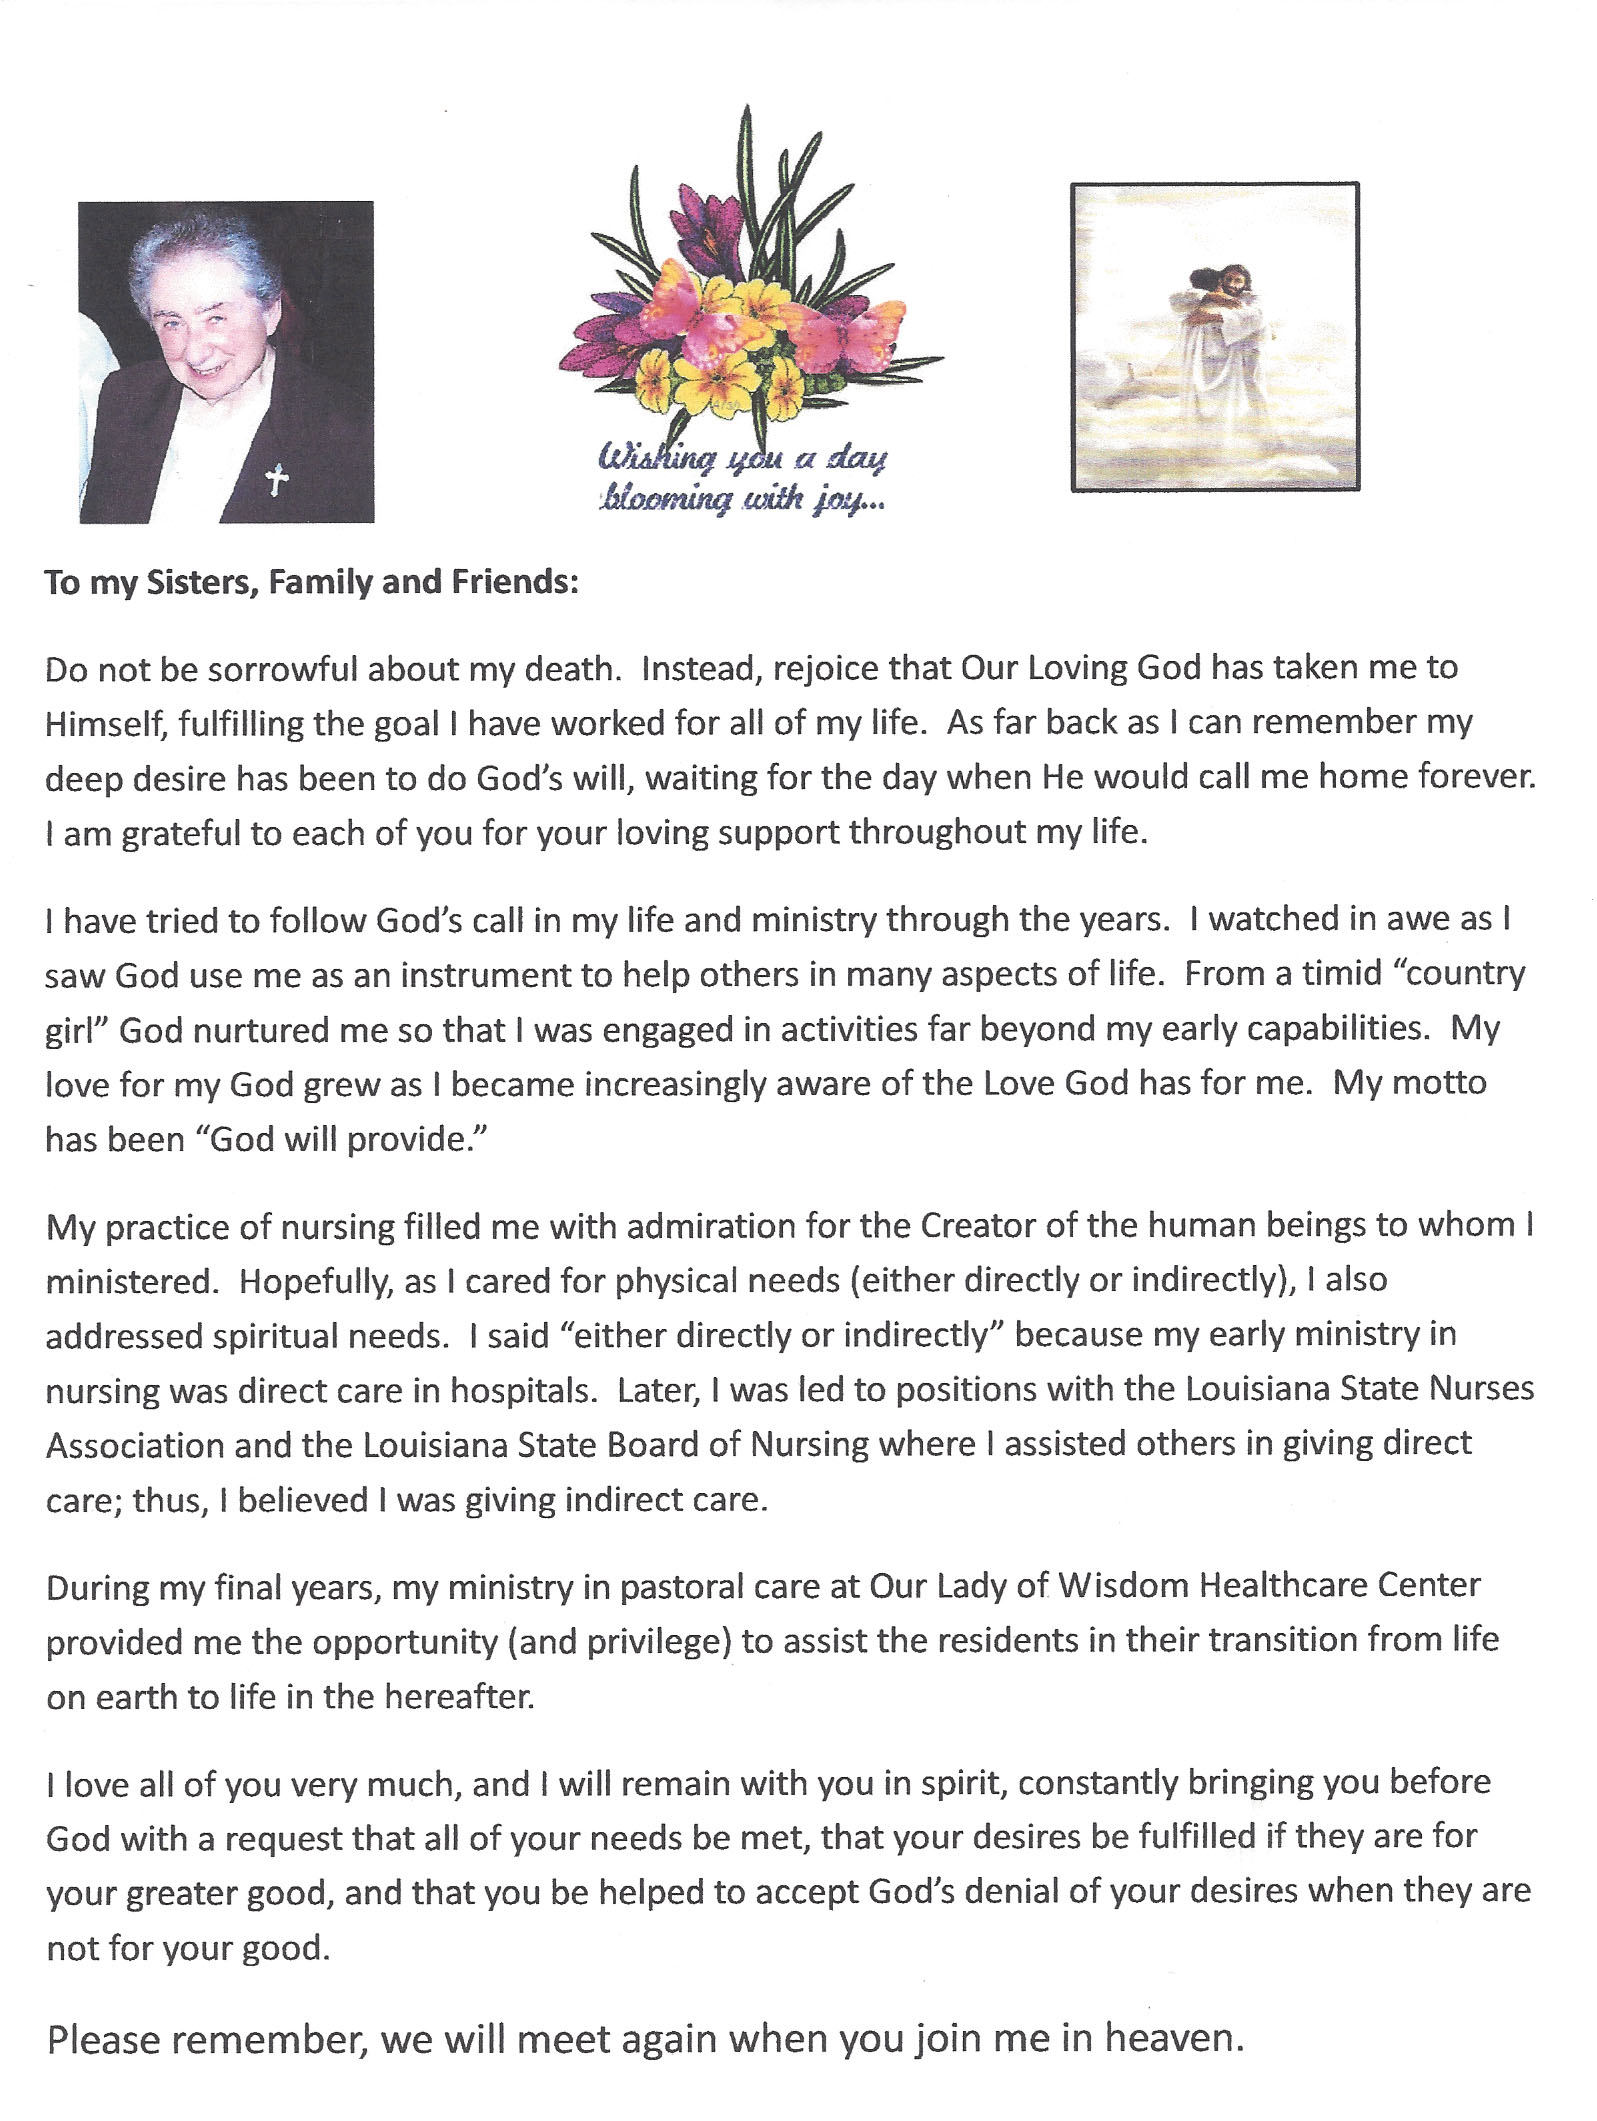 Sisters Of Mount Carmel Sister Lucie Leonards Final Letter to